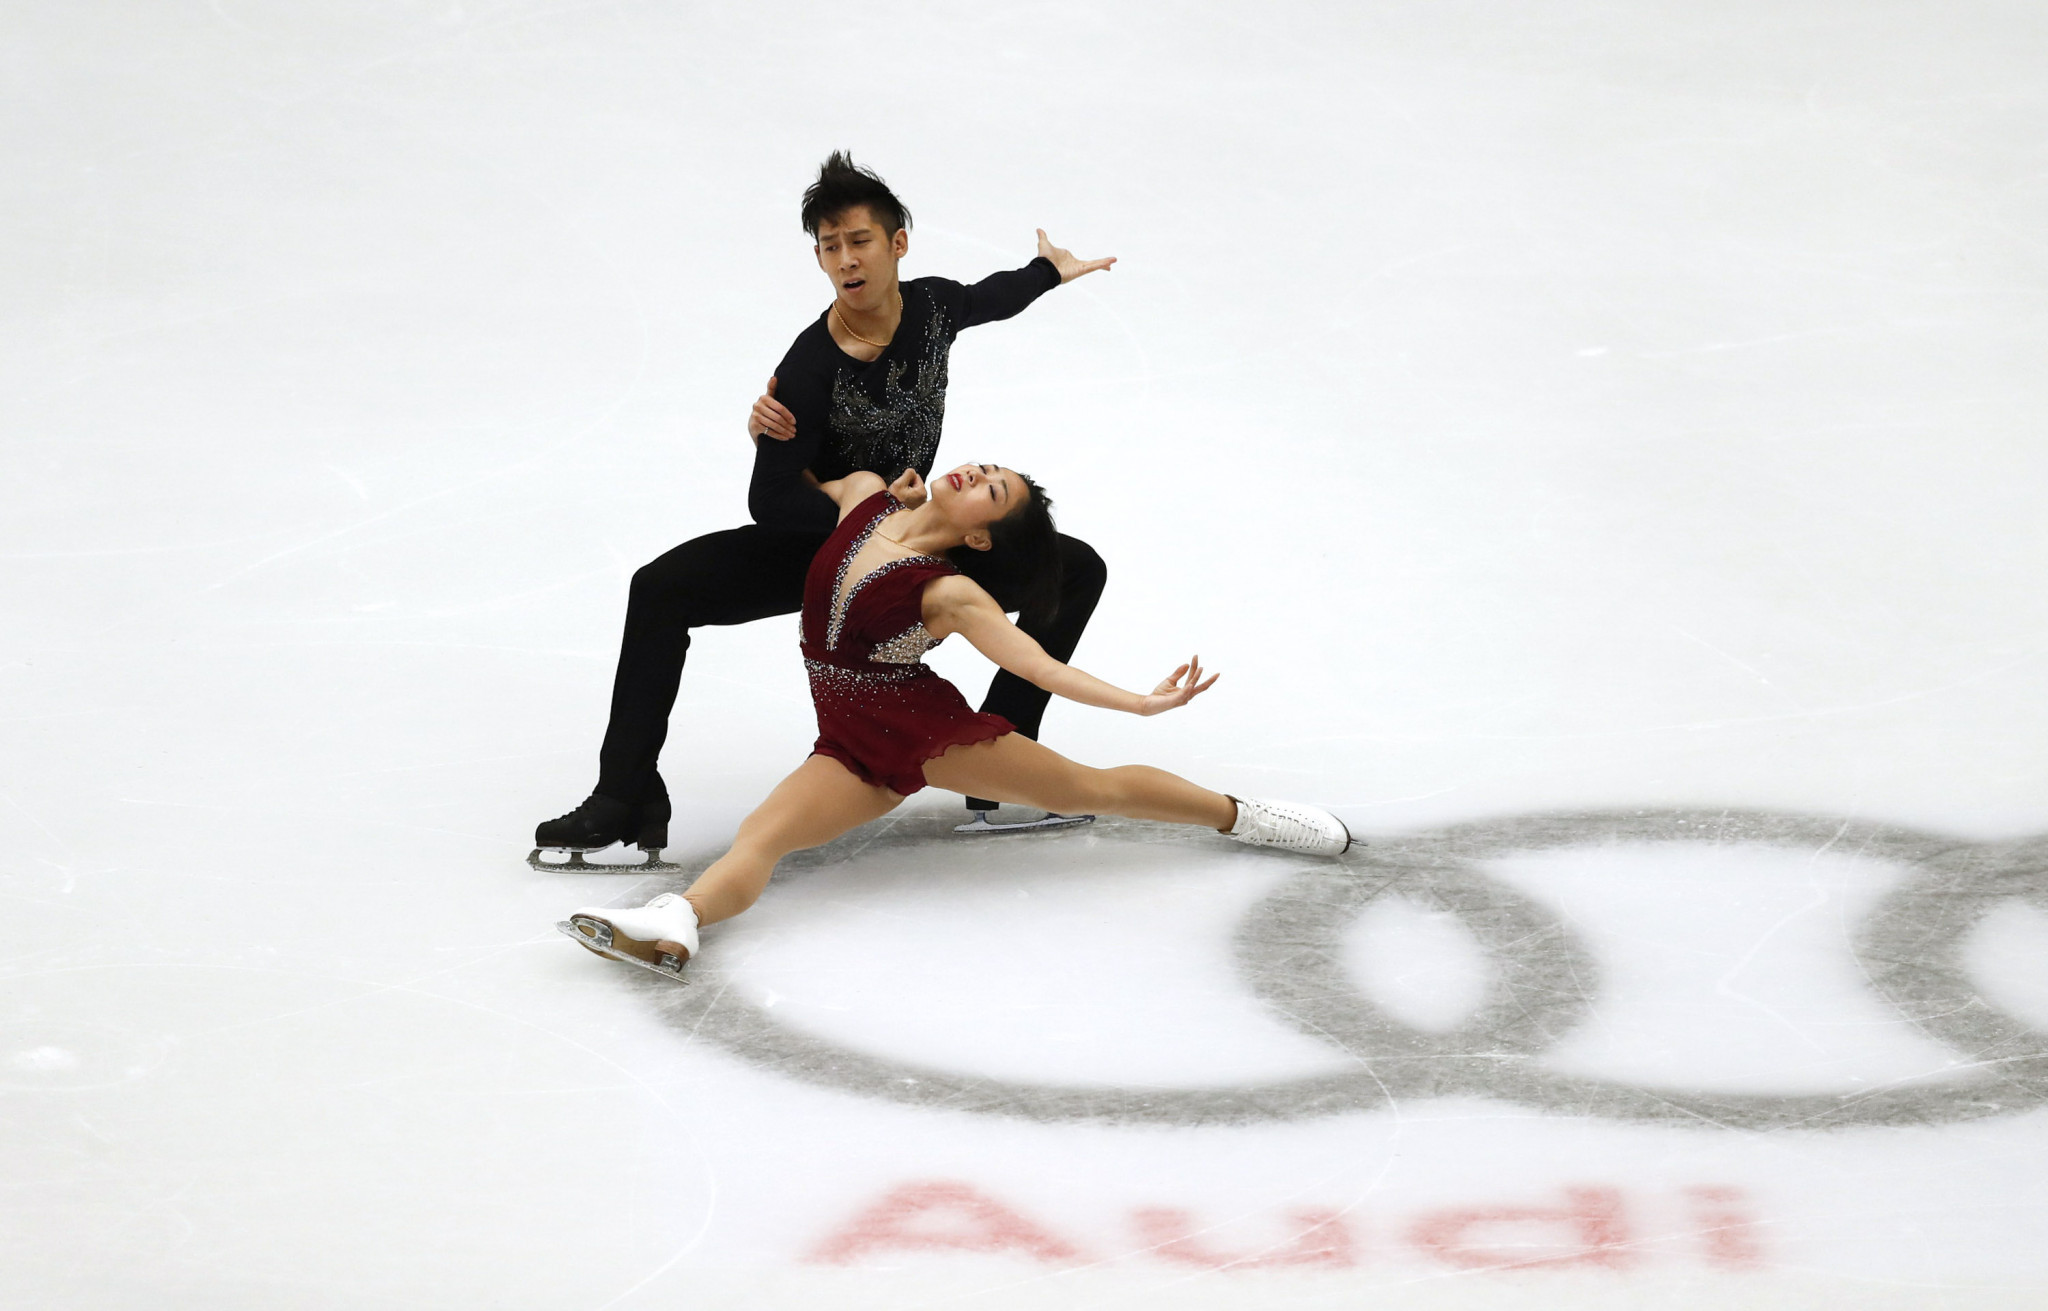 Reigning world pairs champions Wenjing Sui and Cong Han of China are the leaders in the pairs event ©Getty Images